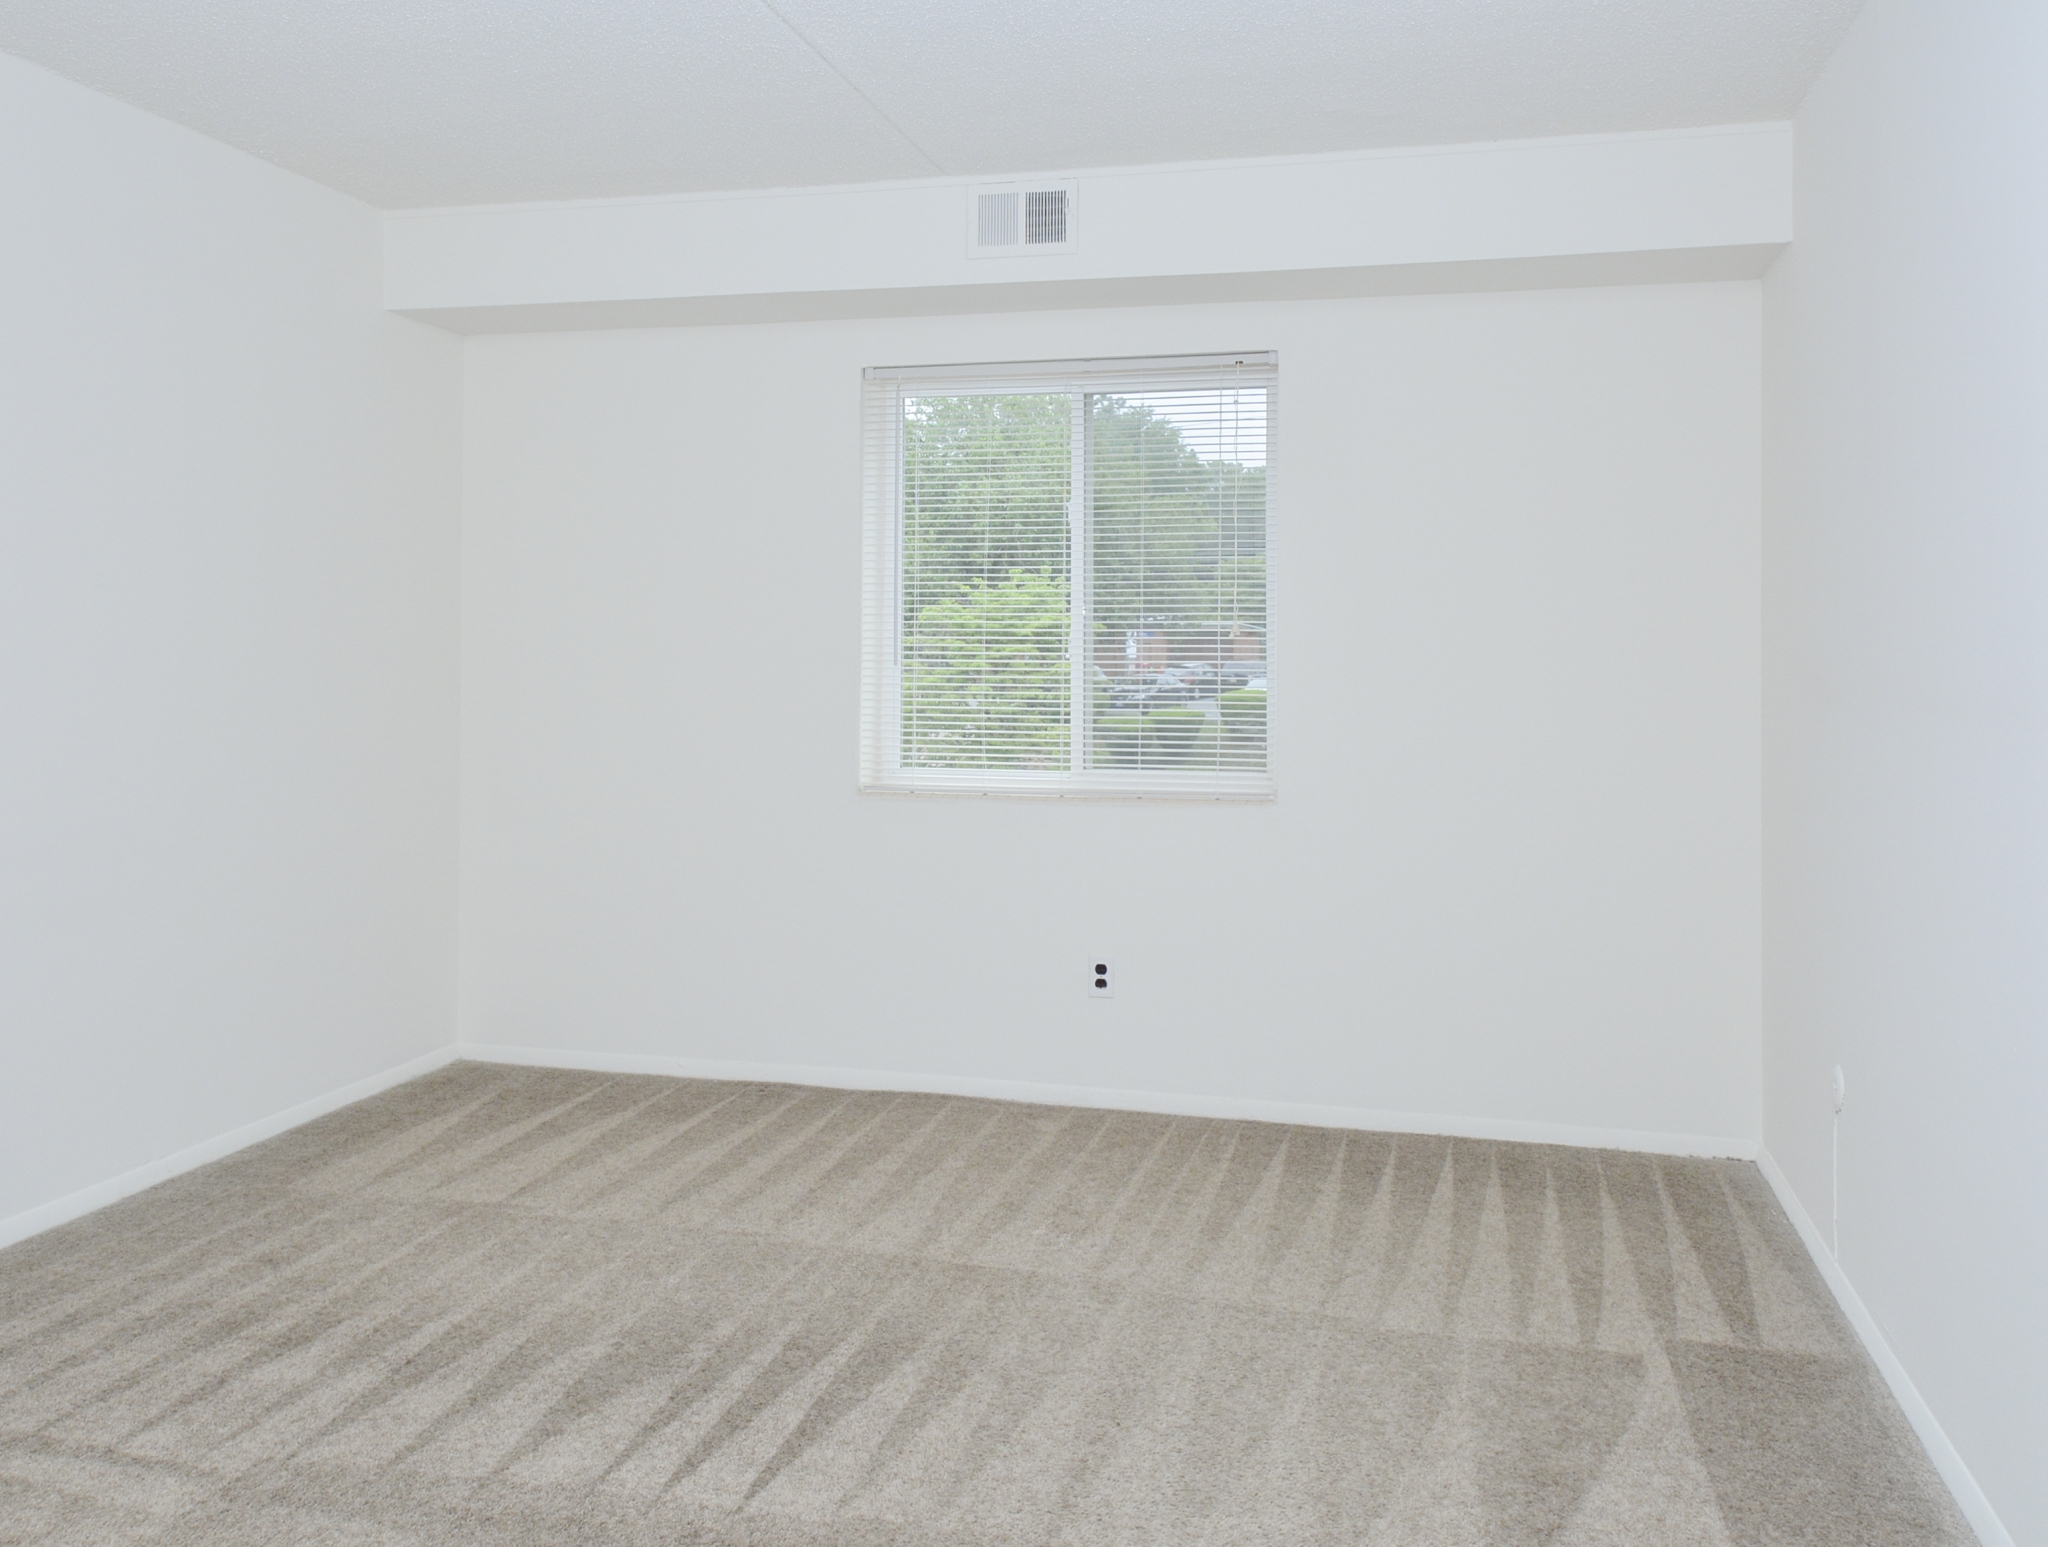 Gladstone Towers Sample Bedroom with Beige Carpet and Window | Apartments in Lansdowne PA